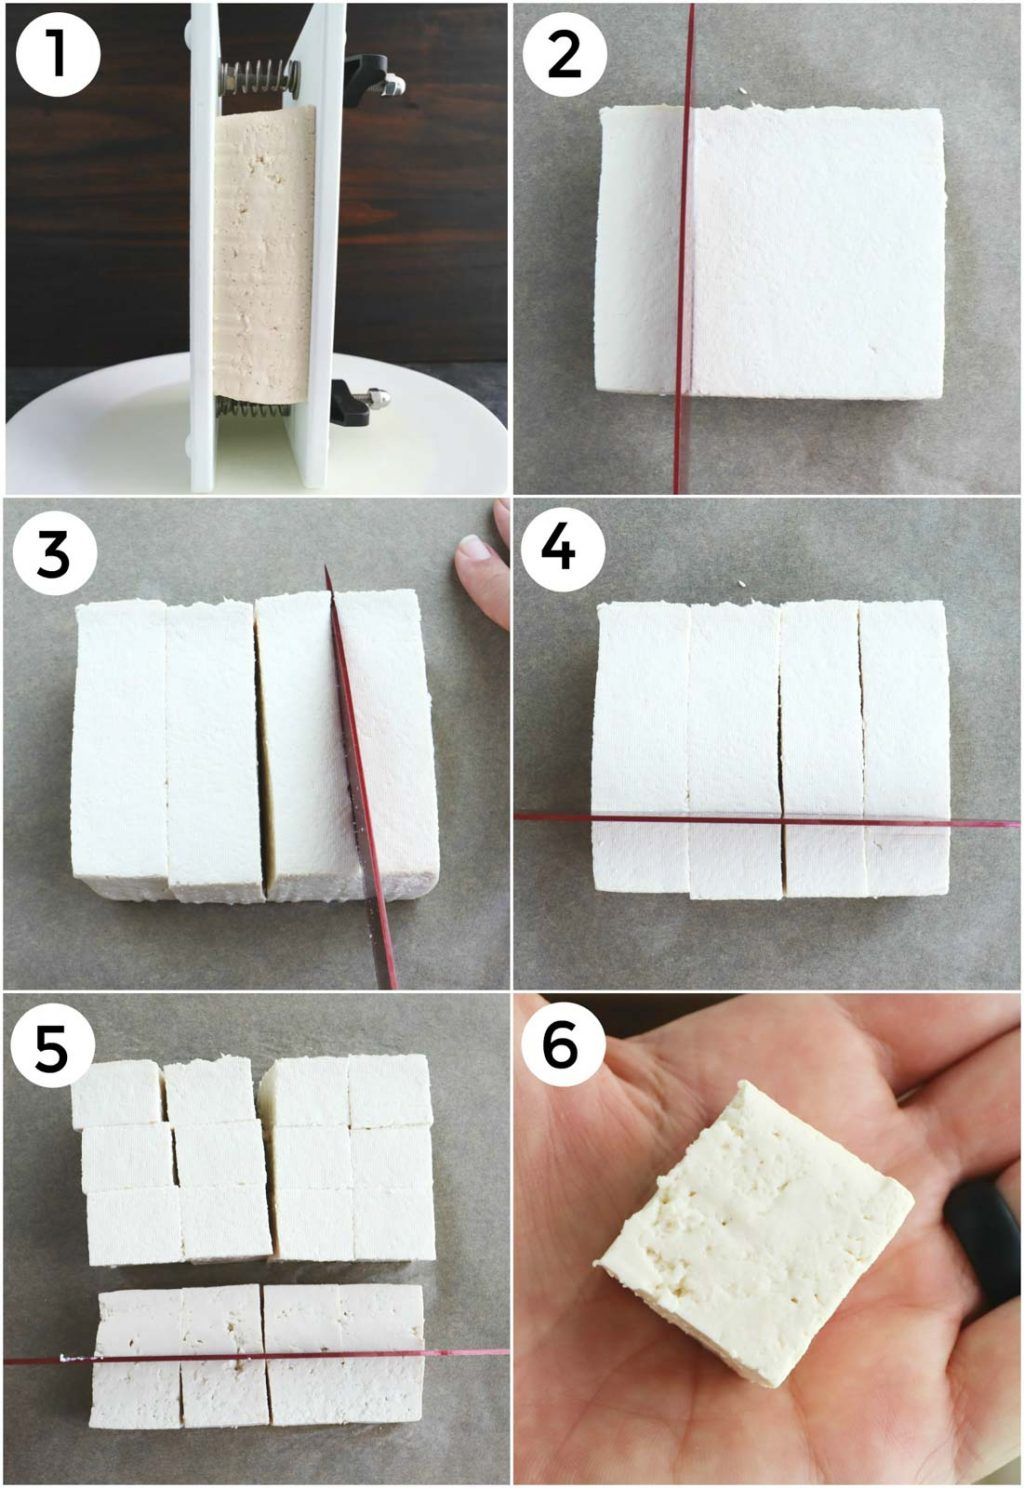 A photo collage showing how to press and slice tofu into cubes.